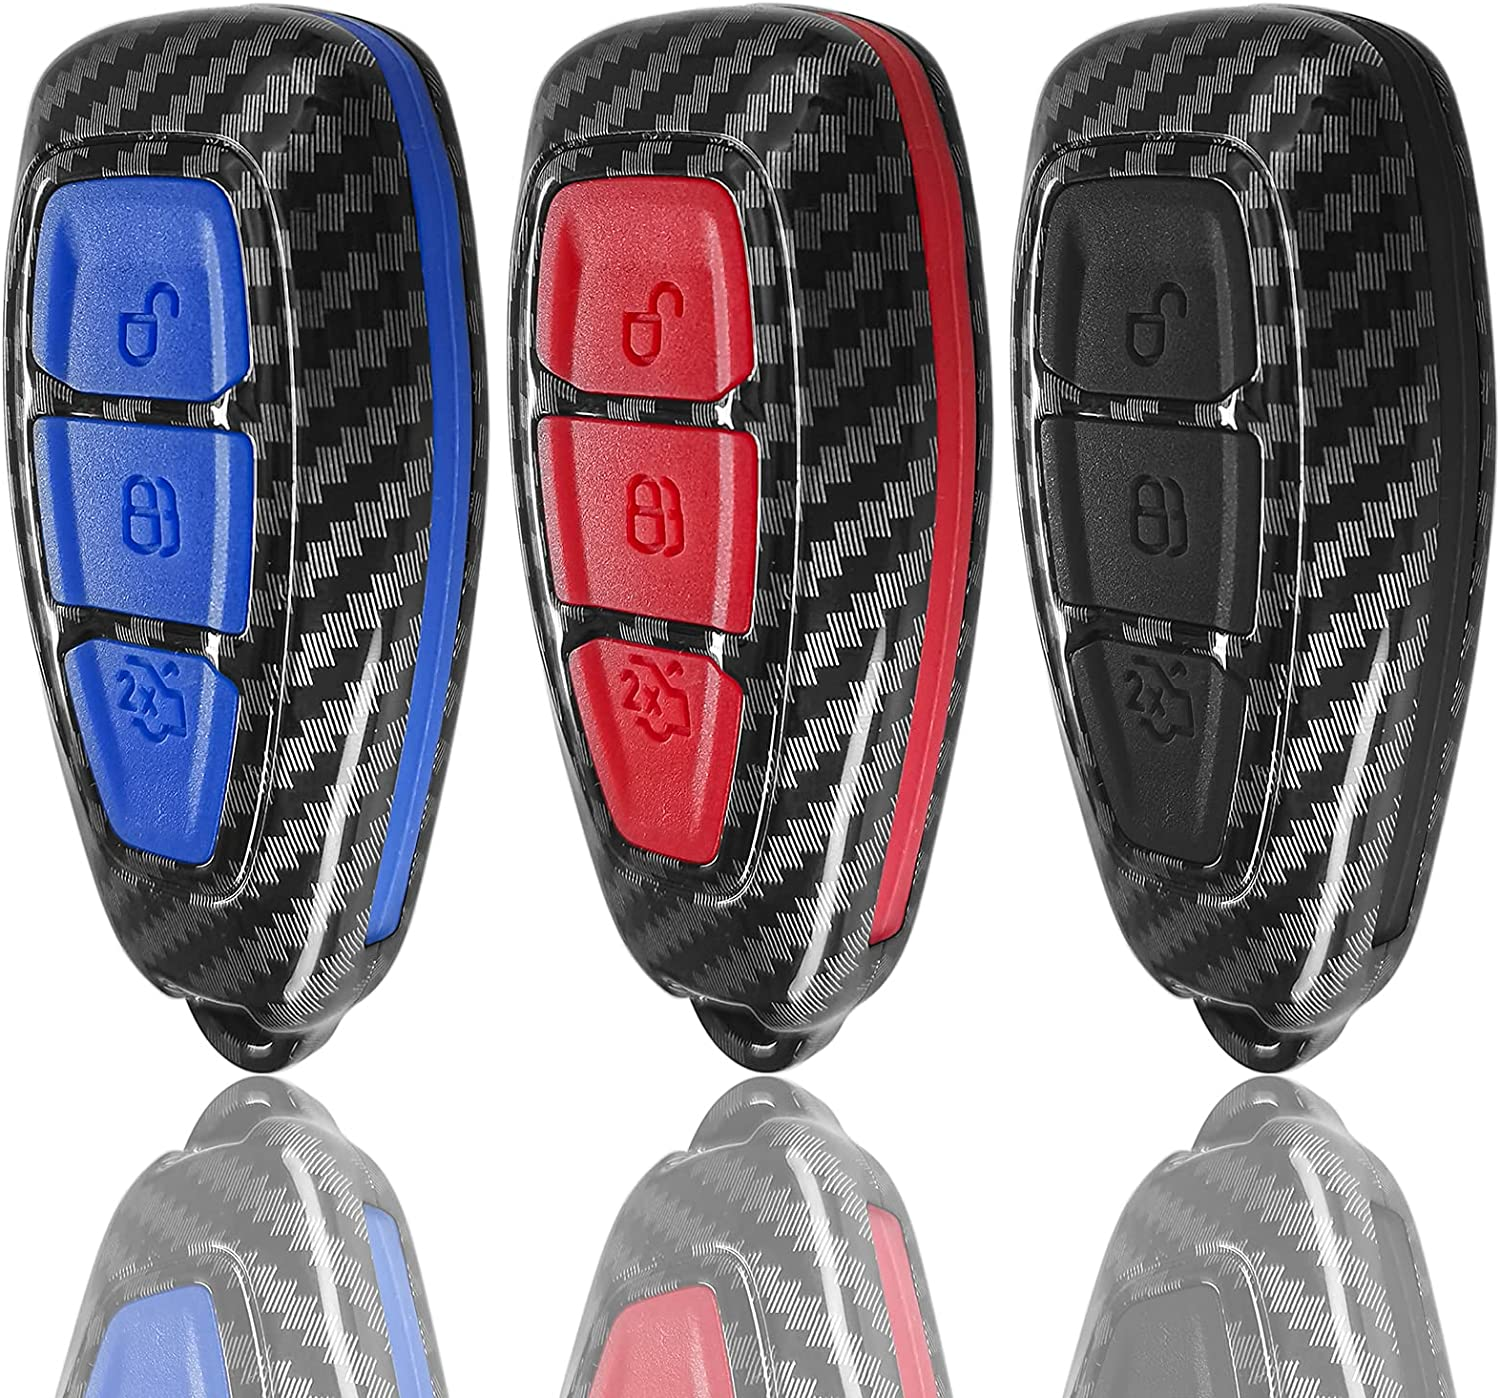 WORCAS 3 Buttons Carbon Fiber Smart Outlet ☆ Free Shipping Cover At the price of surprise Key TPU k Case